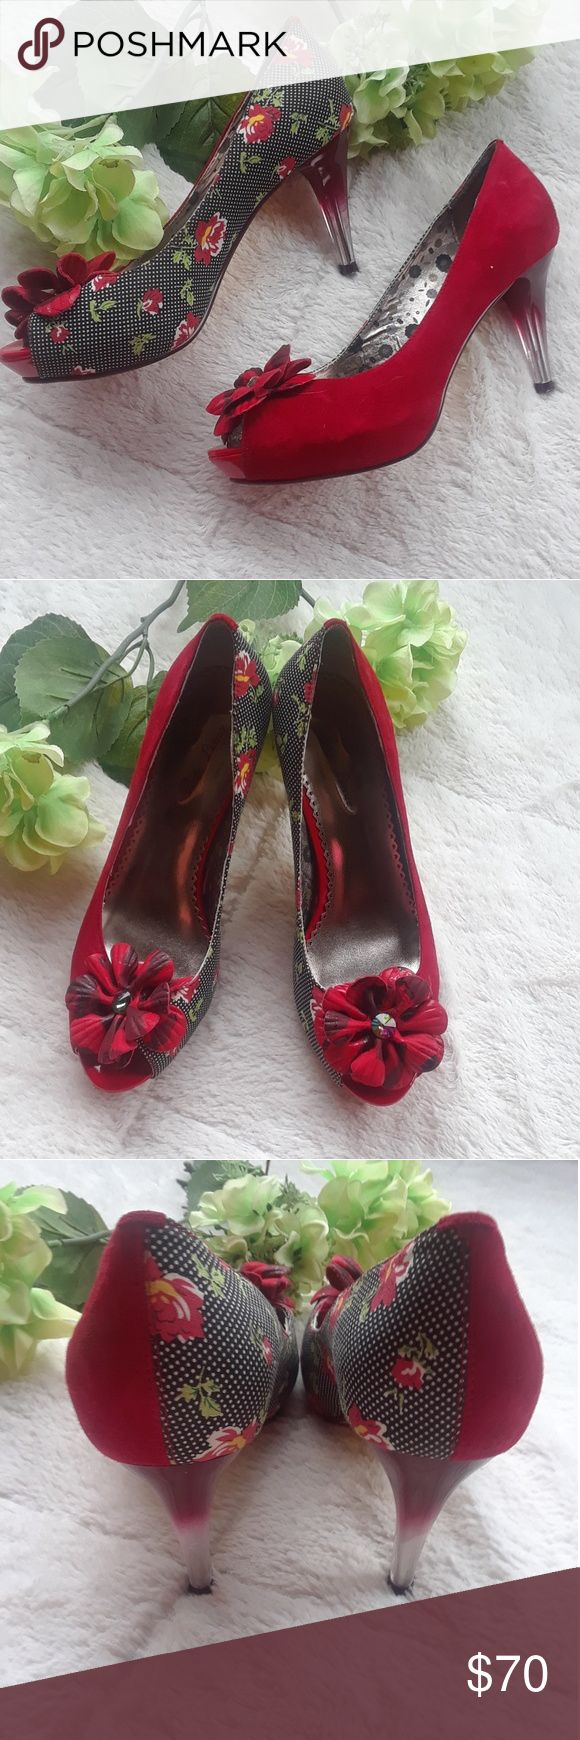 """Poetic Licence Rose Pumps These poetic license pumps would make a great statement piece for any outfit! Have everybody complimenting you with these great heels. These two toned heels have been loved in their past but are in very well taken care of condition. Size 7 with a 3 1/2"""" heel Poetic License Shoes Heels"""